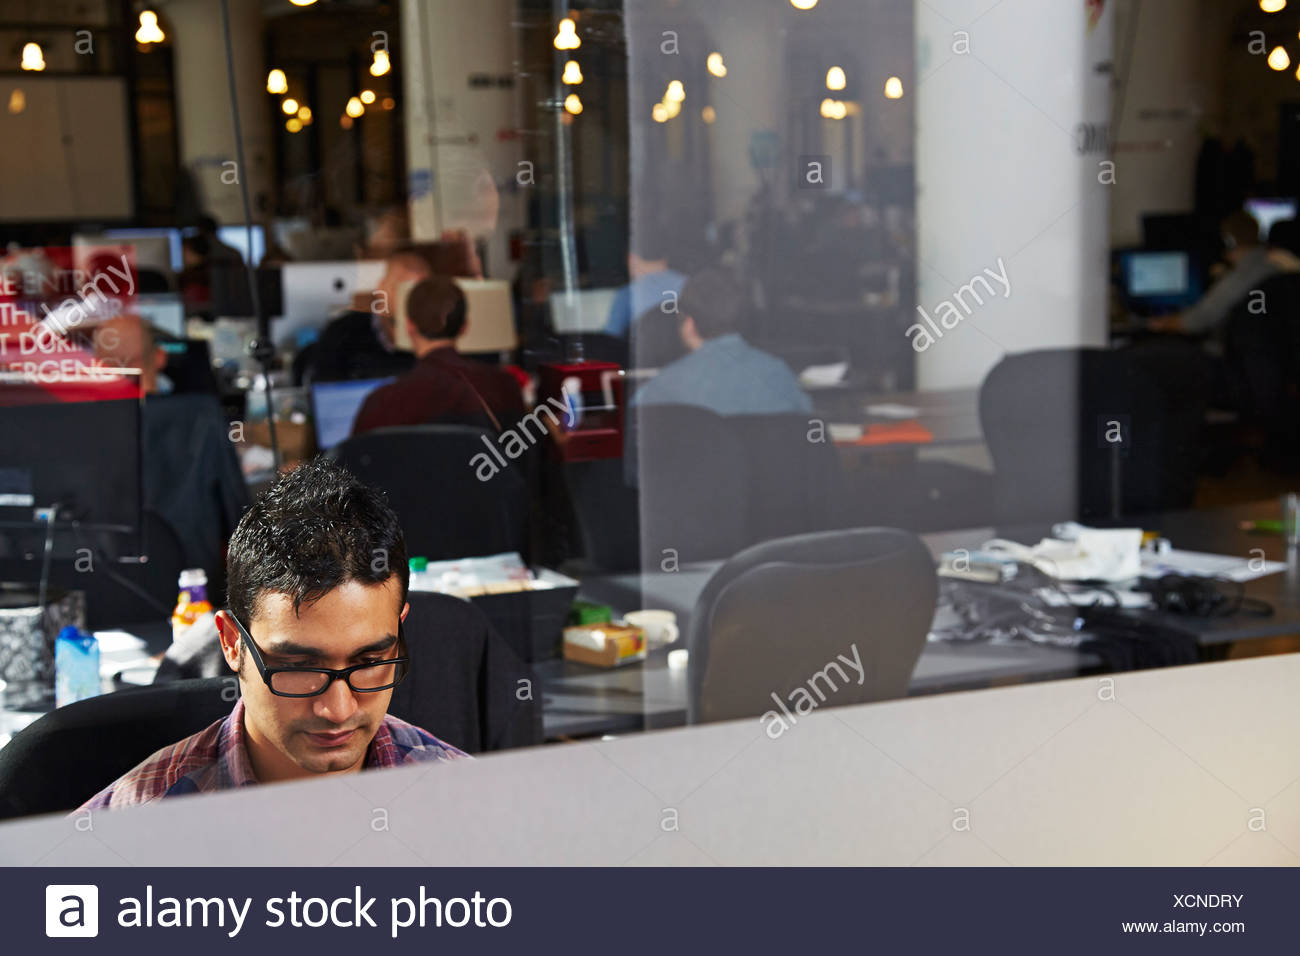 Young man working in office Photo Stock